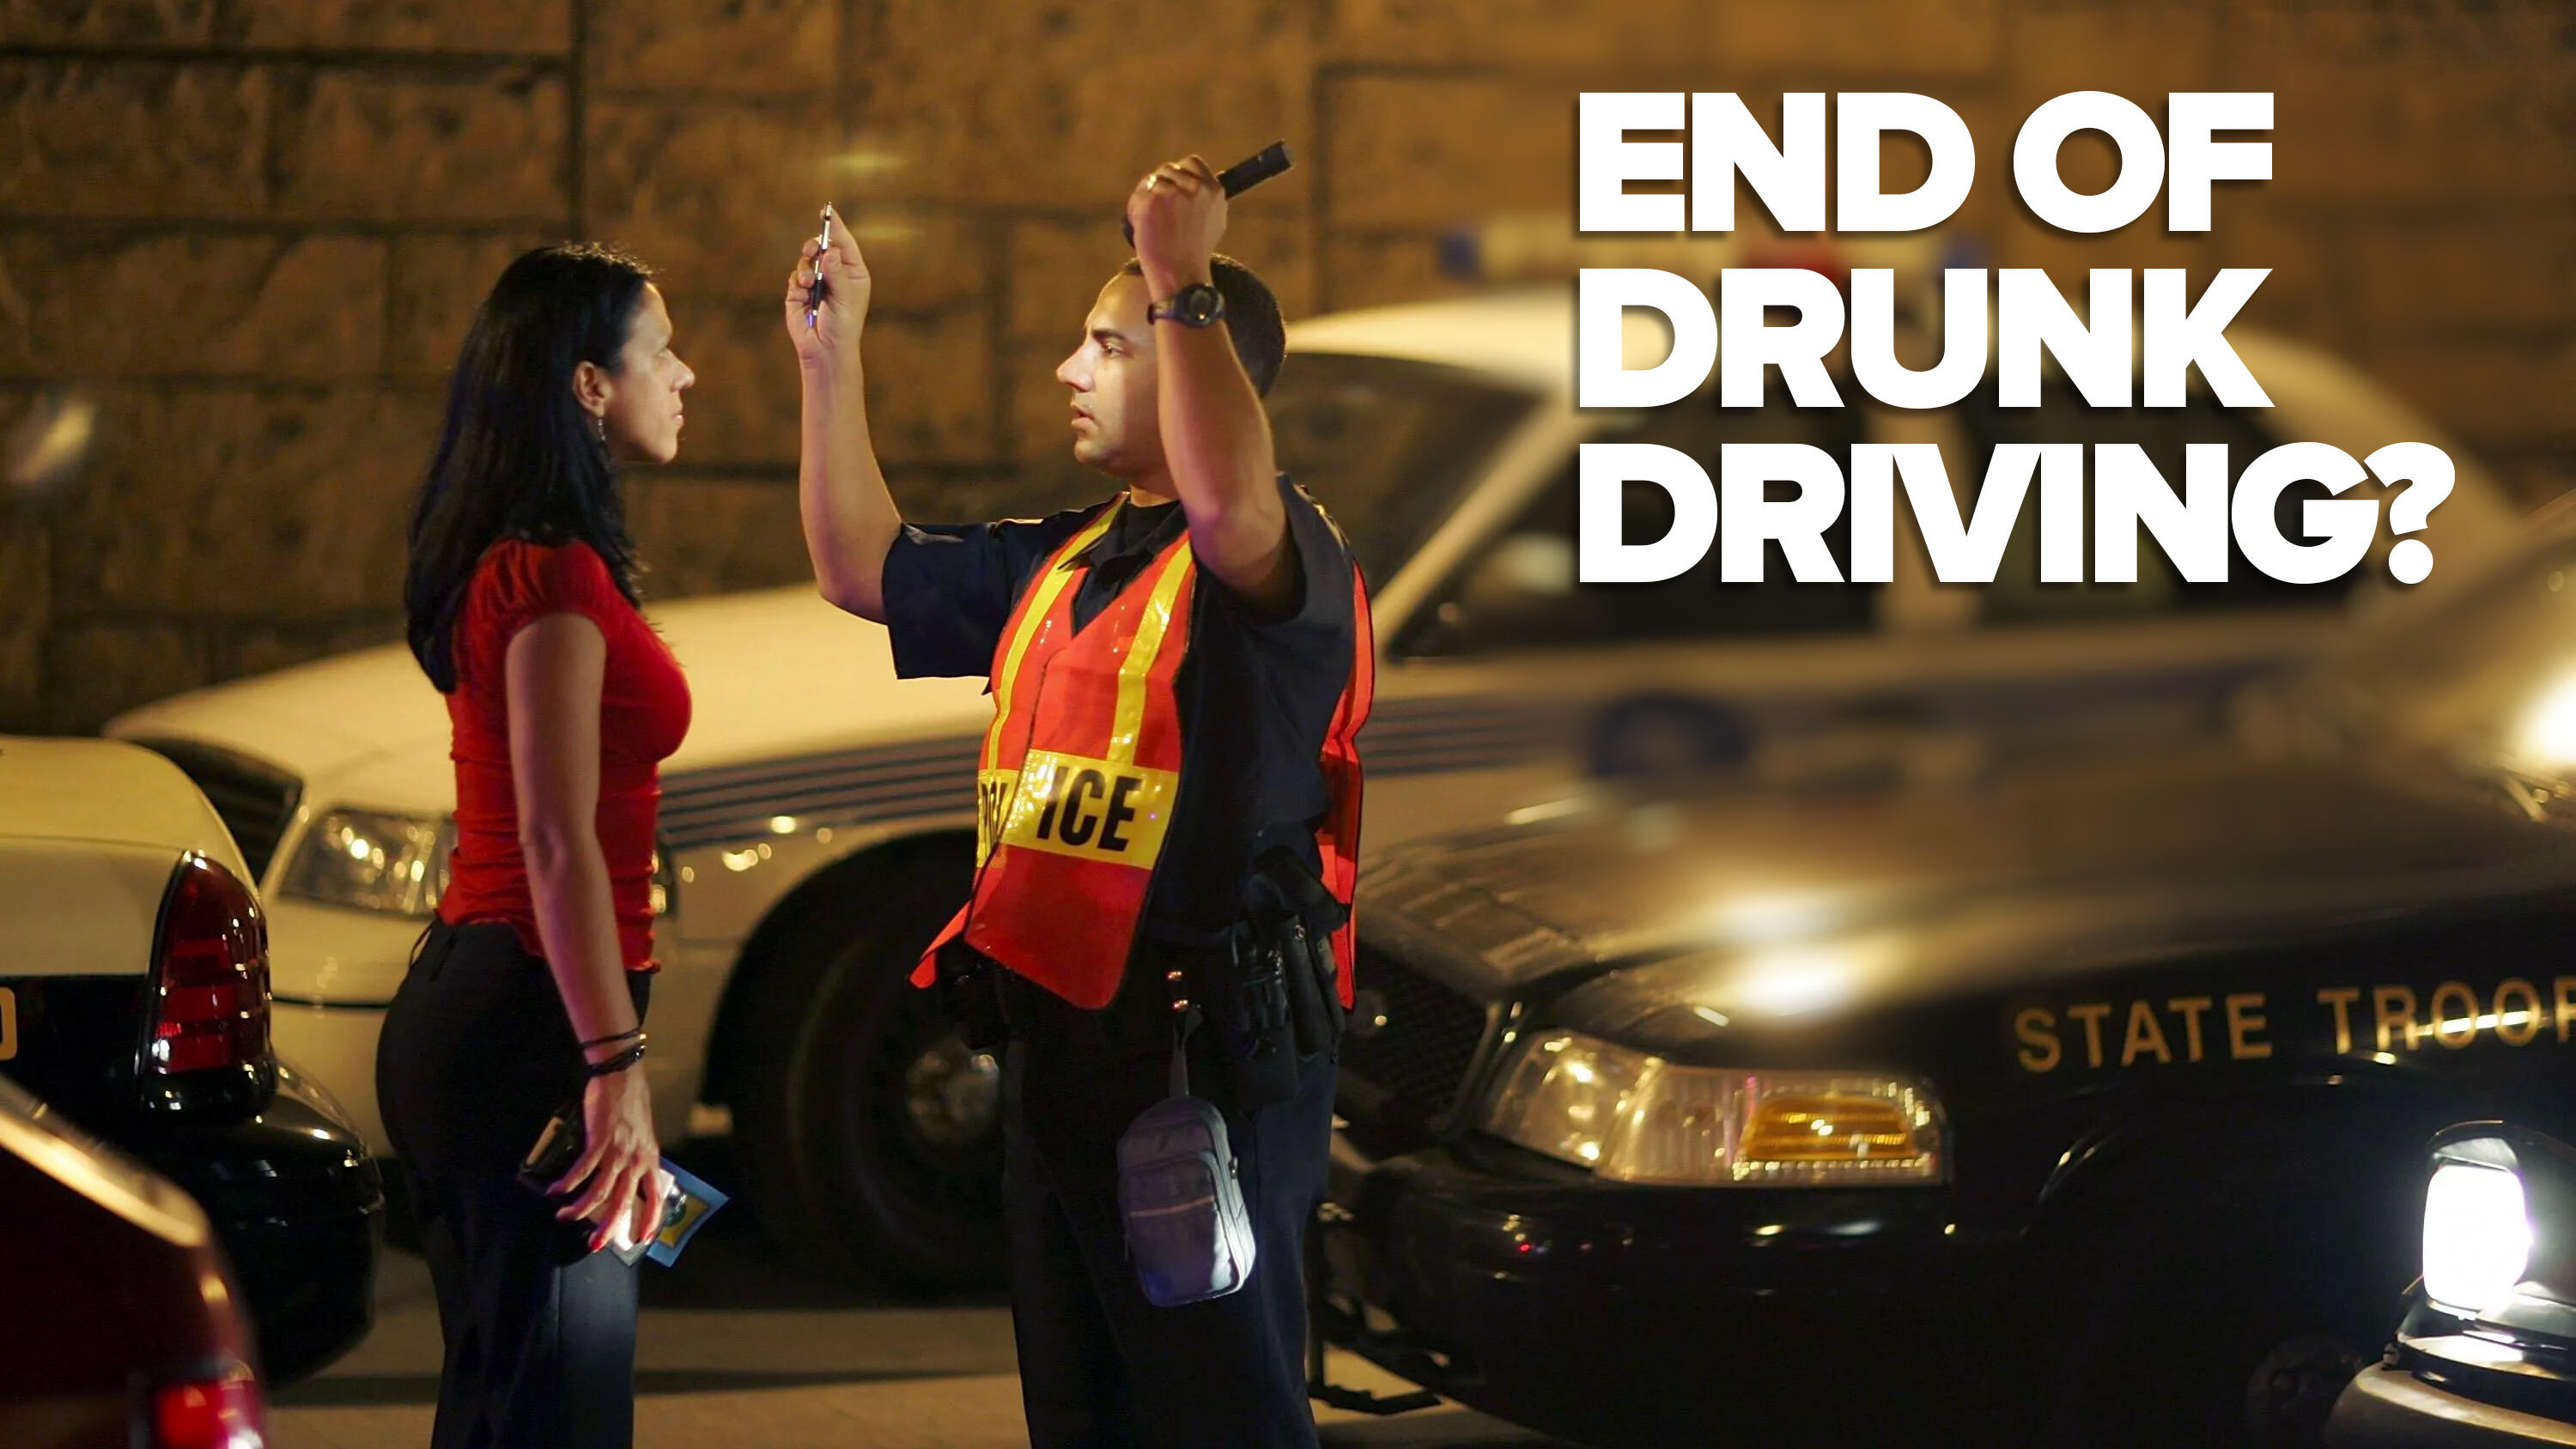 Video: Tomorrow's cars may not let drunk drivers on the road